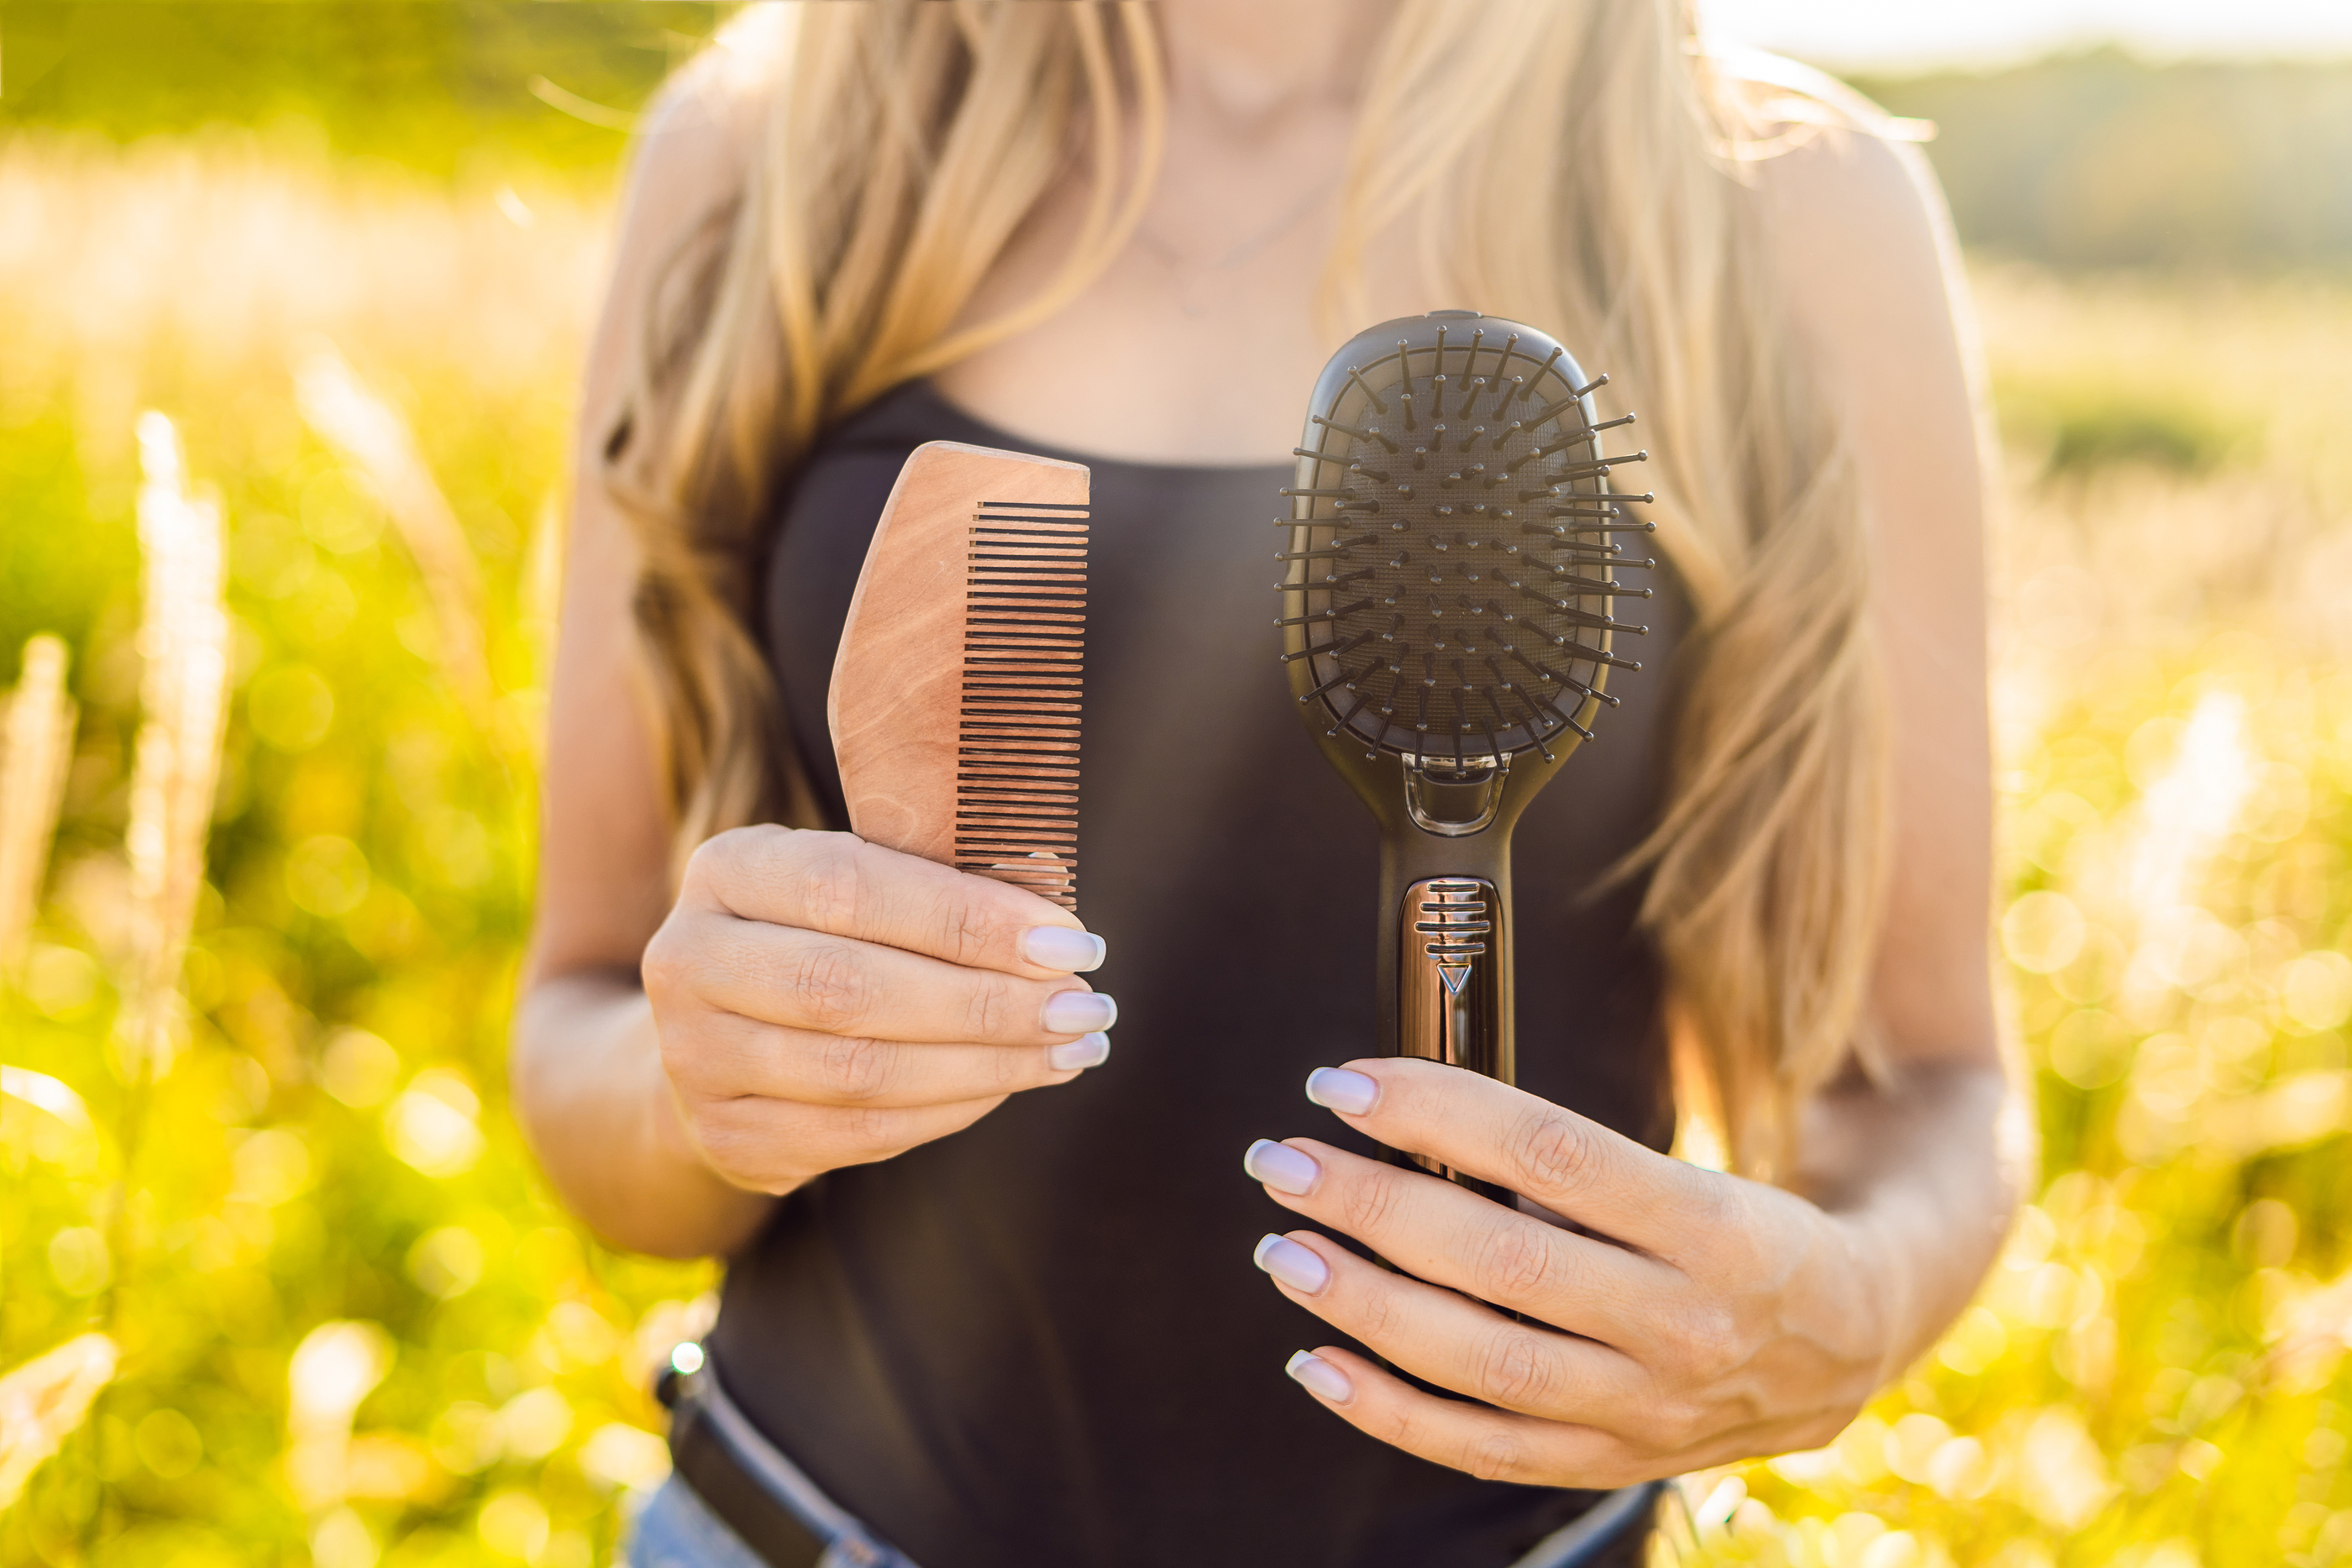 zero waste swap wooden comb plastic hairbrush